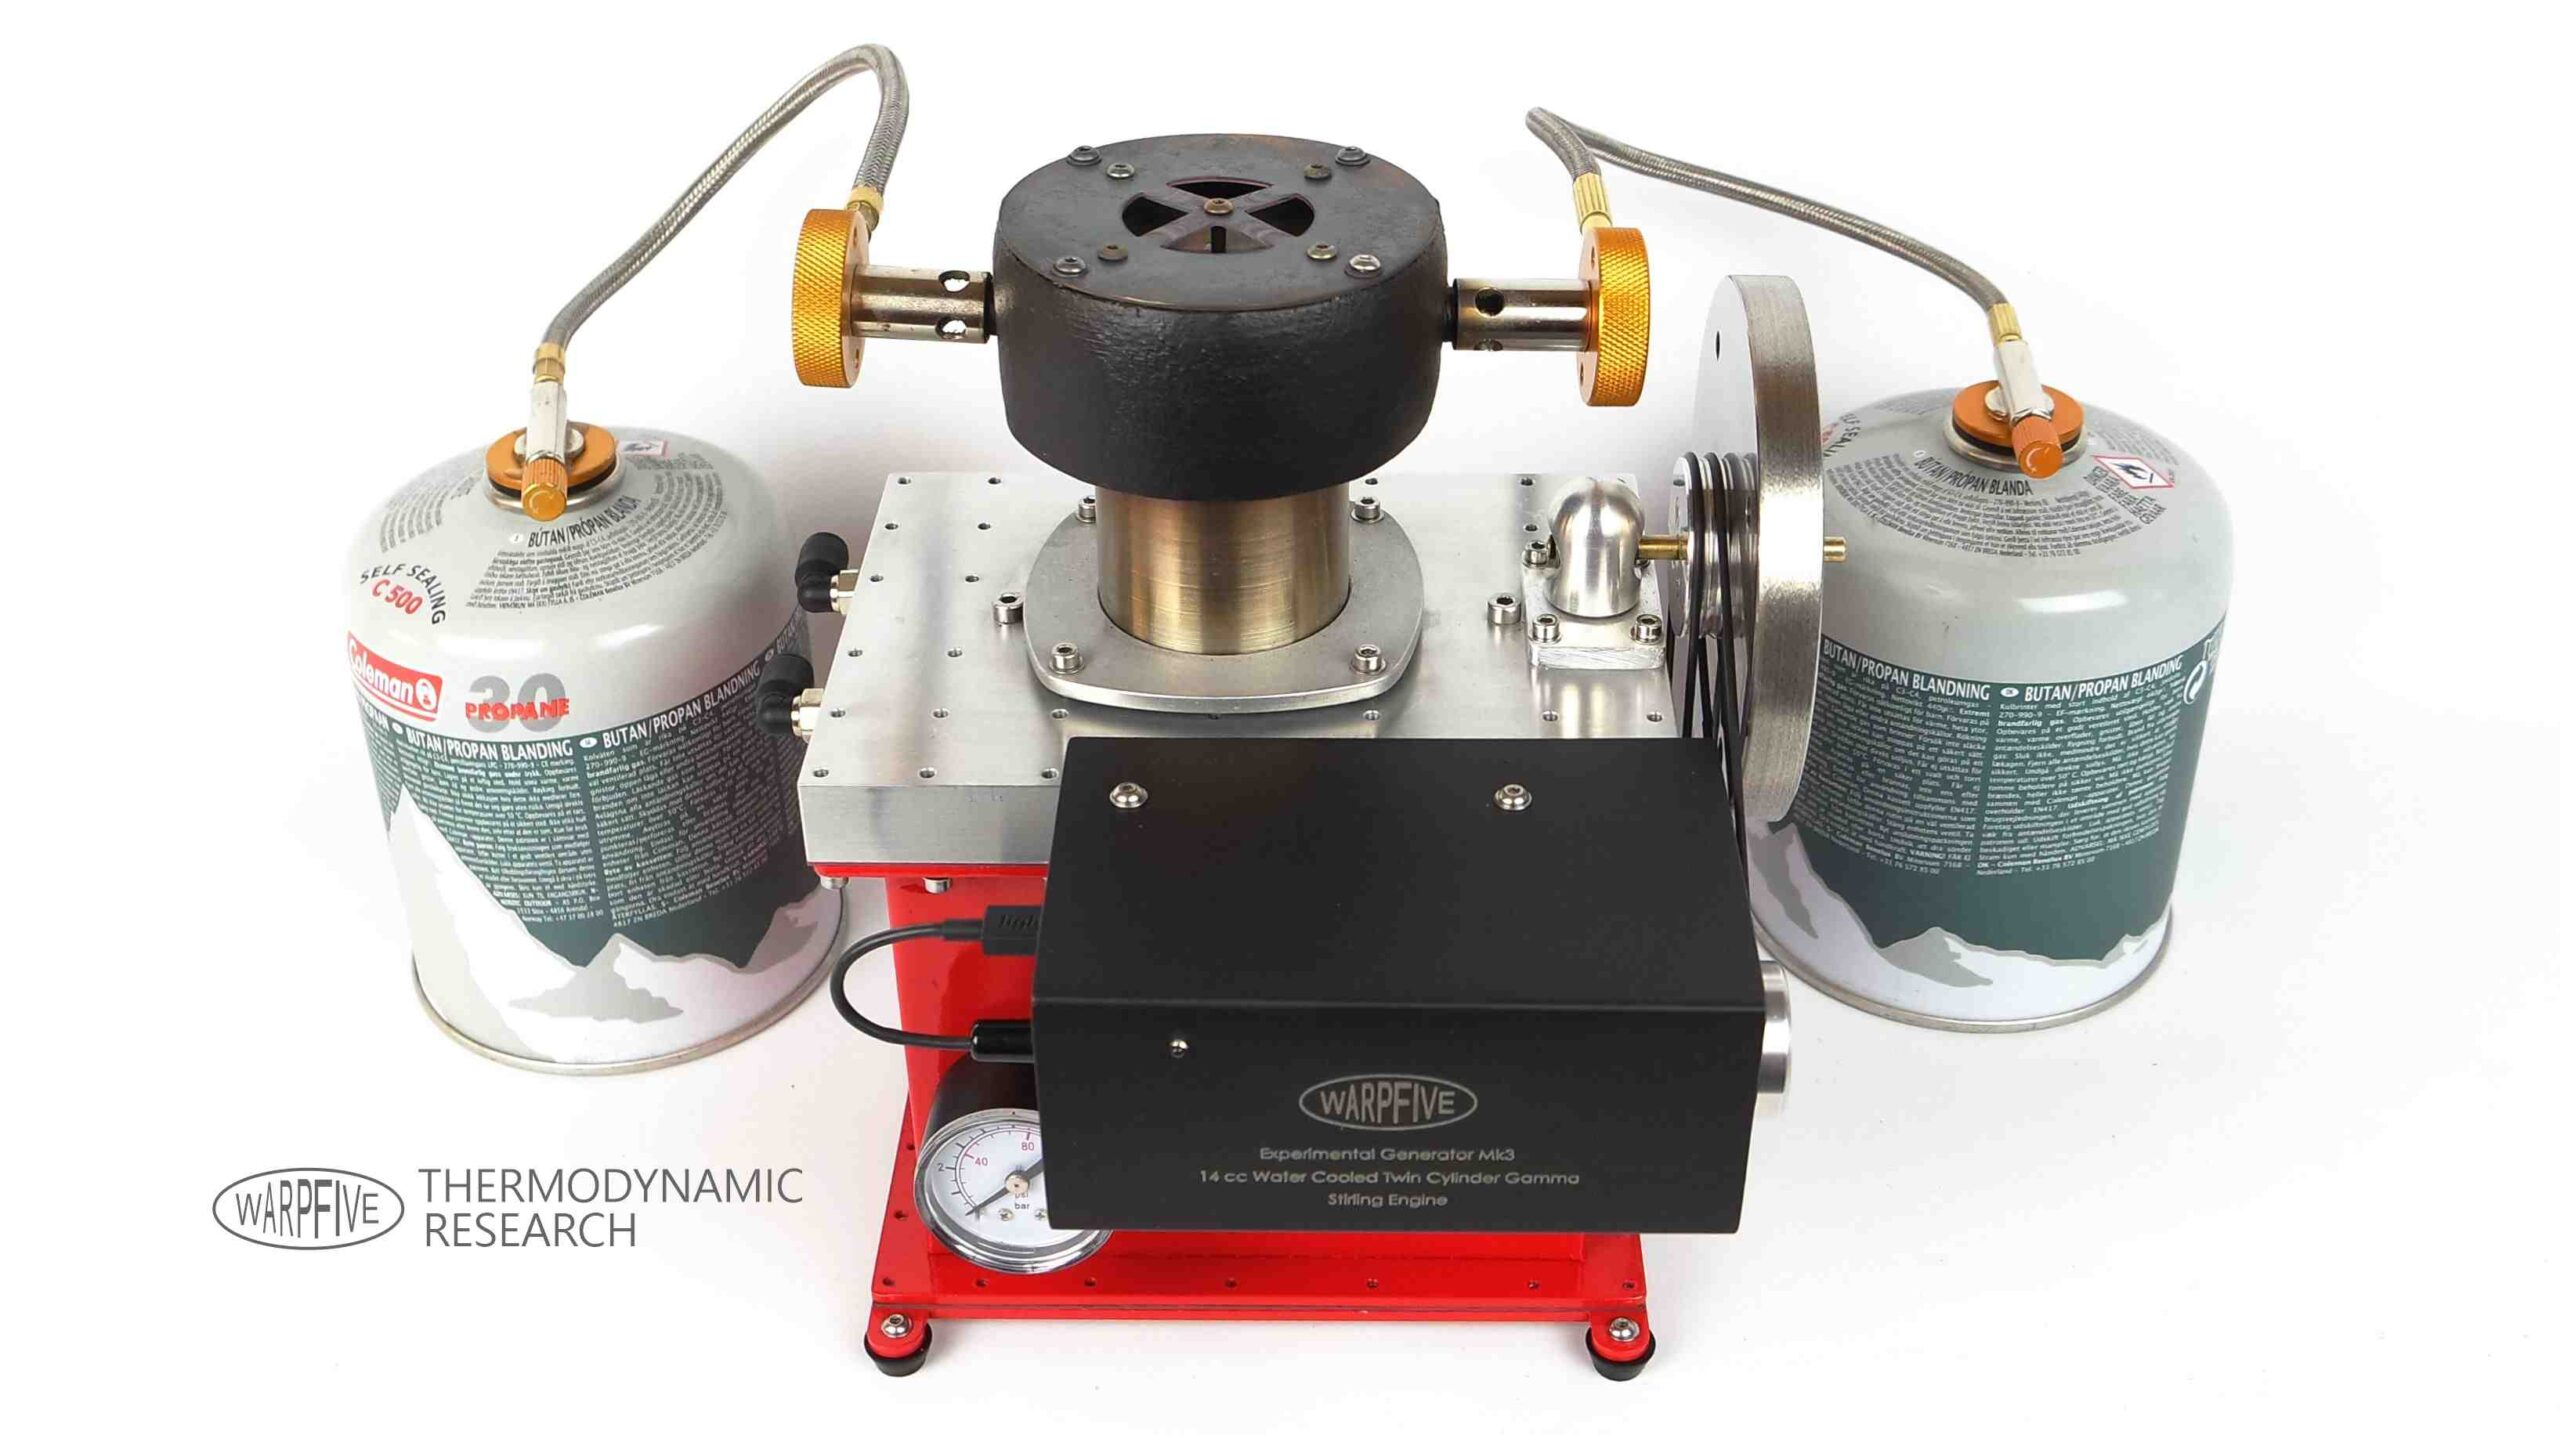 Warpfive 14cc water-cooled twin cylinder Gama experimental generator powered by camping gas through an annular burner for off-grid use